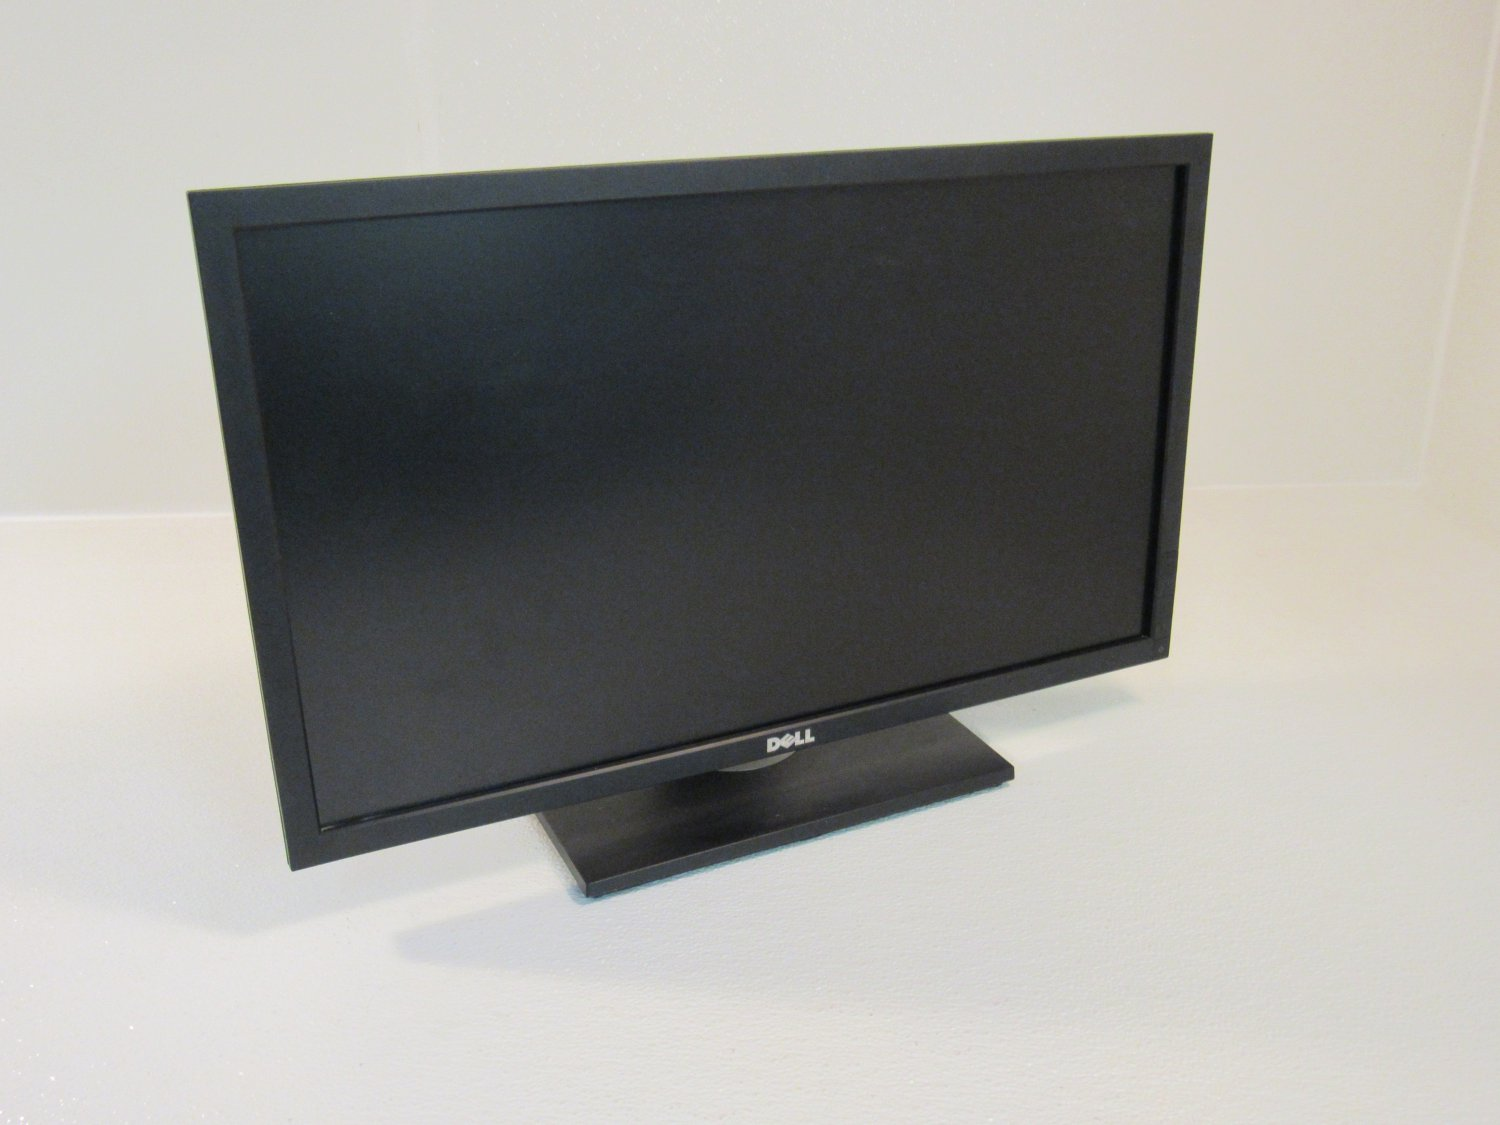 Dell 24in LED Flat Widescreen Monitor Black P2411Hb